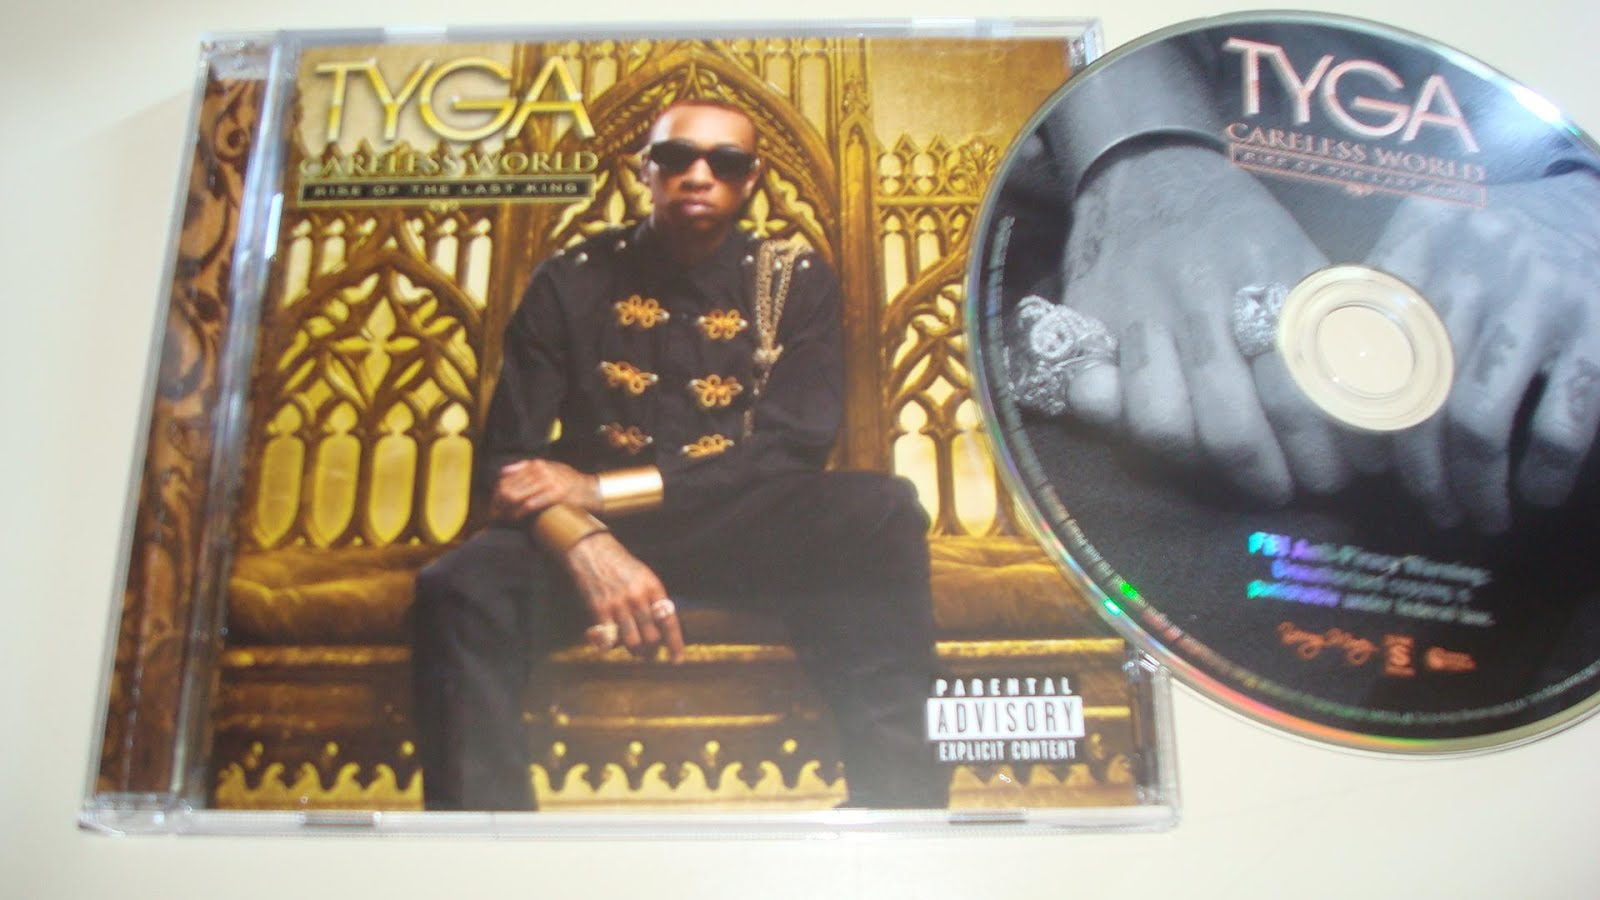 Tyga Careless World Mediafire